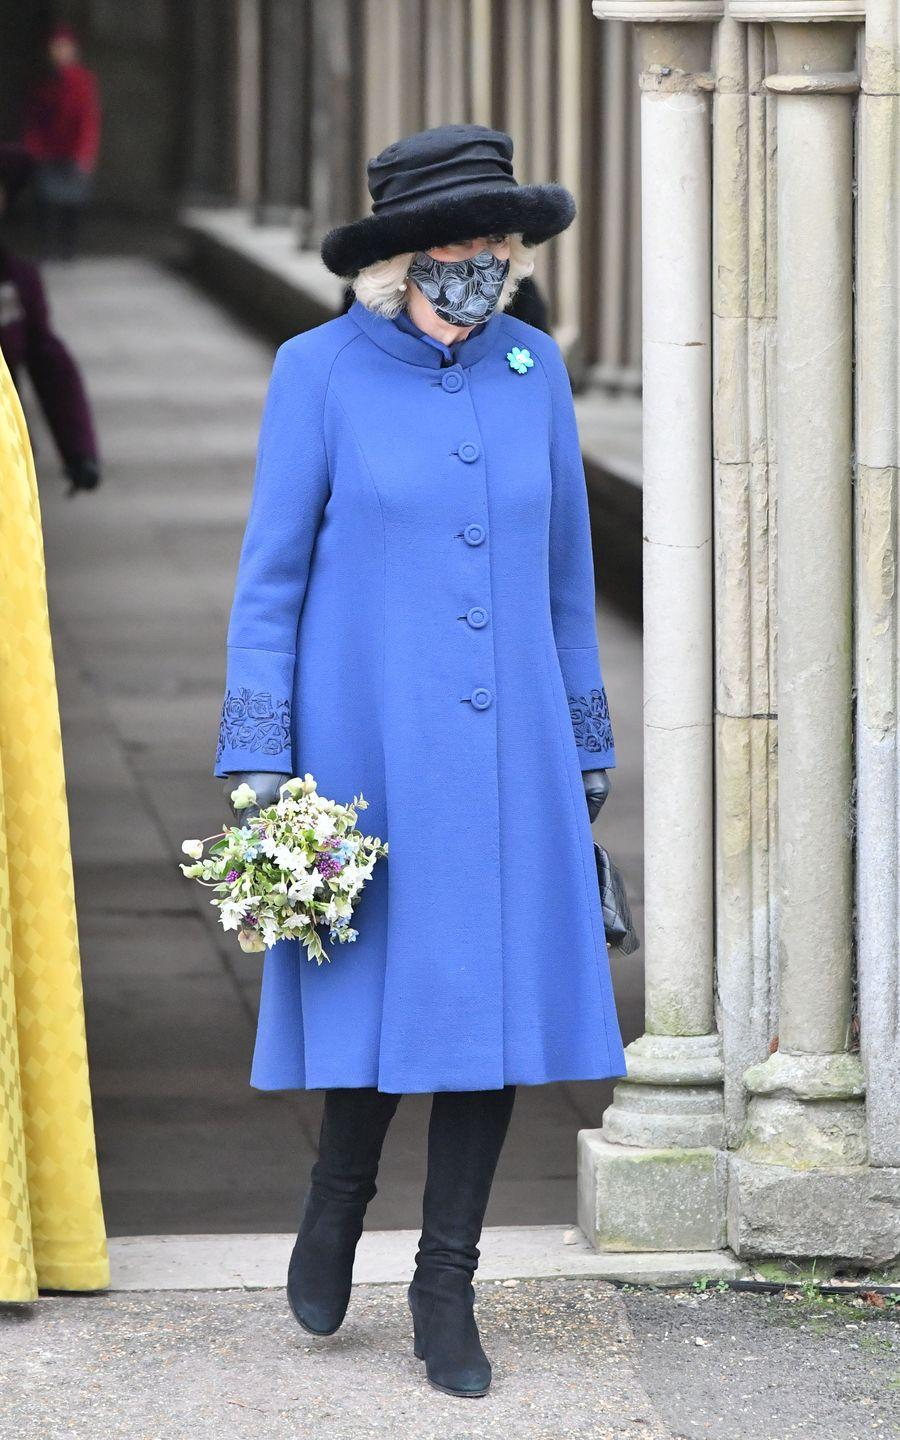 <p>The Duchess of Cornwall sported a blue coat with floral-embroidered cuffs, black boots, and a black fur-trimmed hat while attending a celebration of Salisbury Cathedral's 800th anniversary.</p>